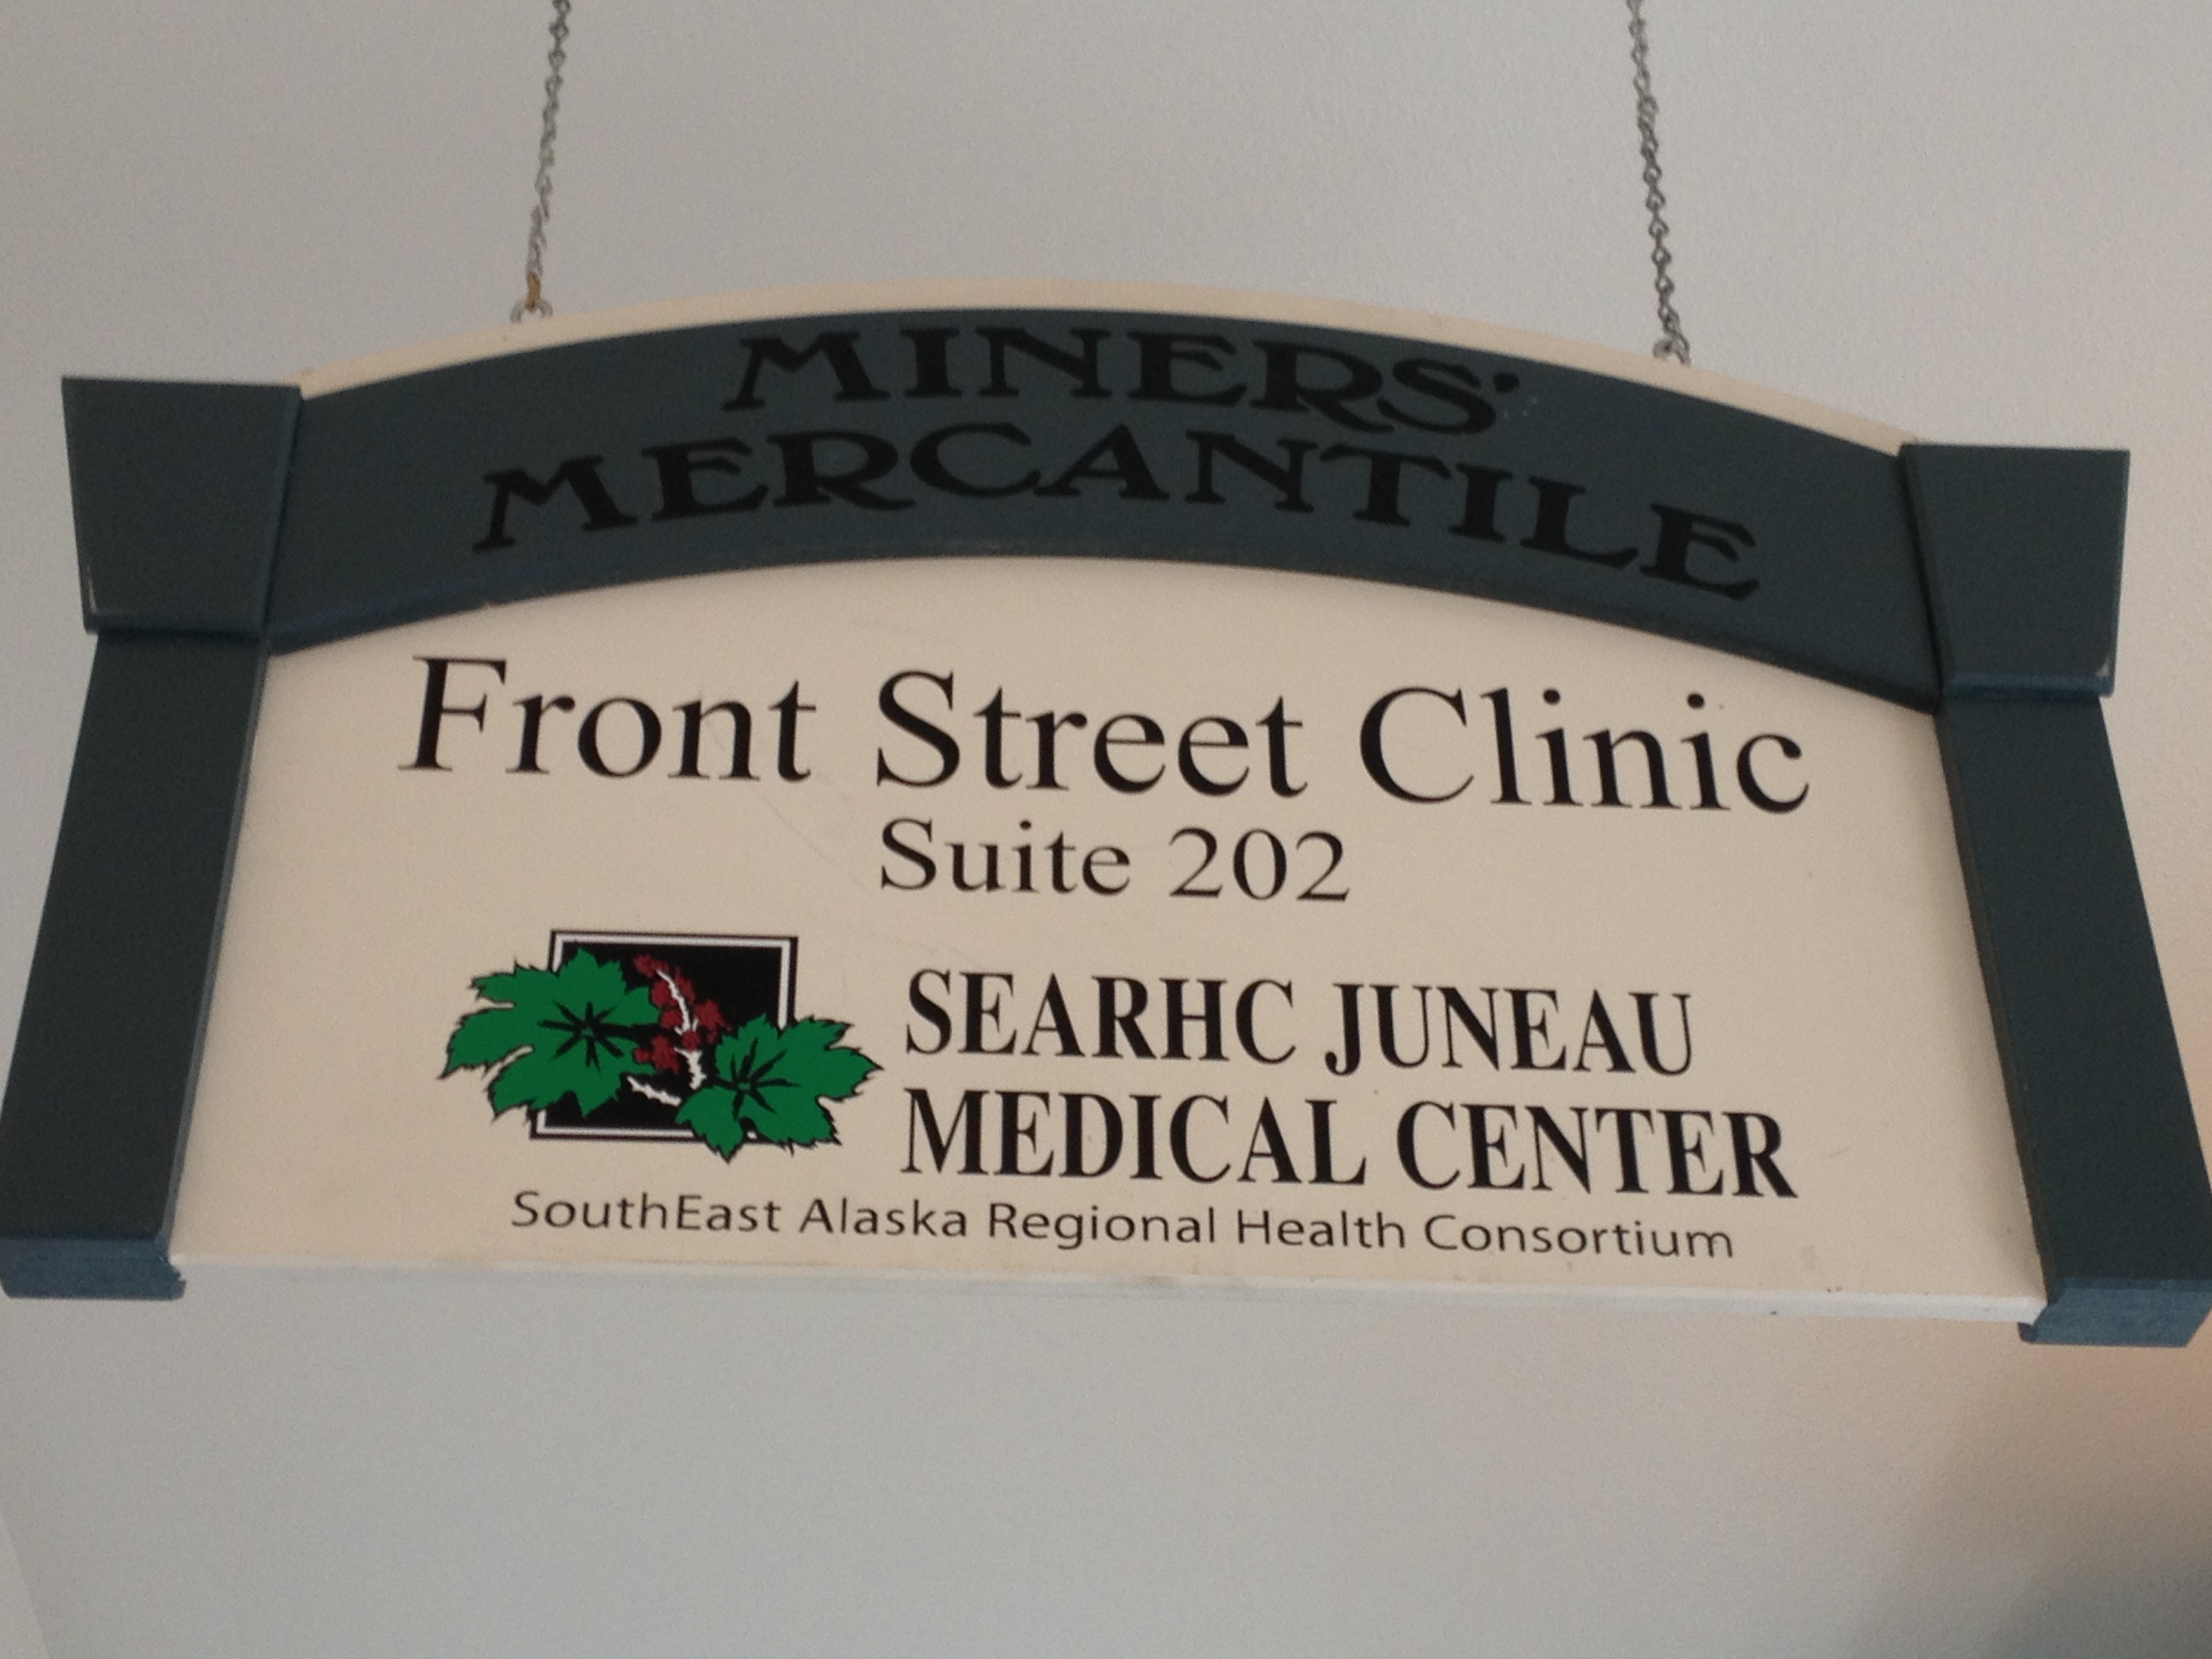 As of May 1, SEARHC will not longer be operating Front Street Clinic. (Photo by Lisa Phu/KTOO)